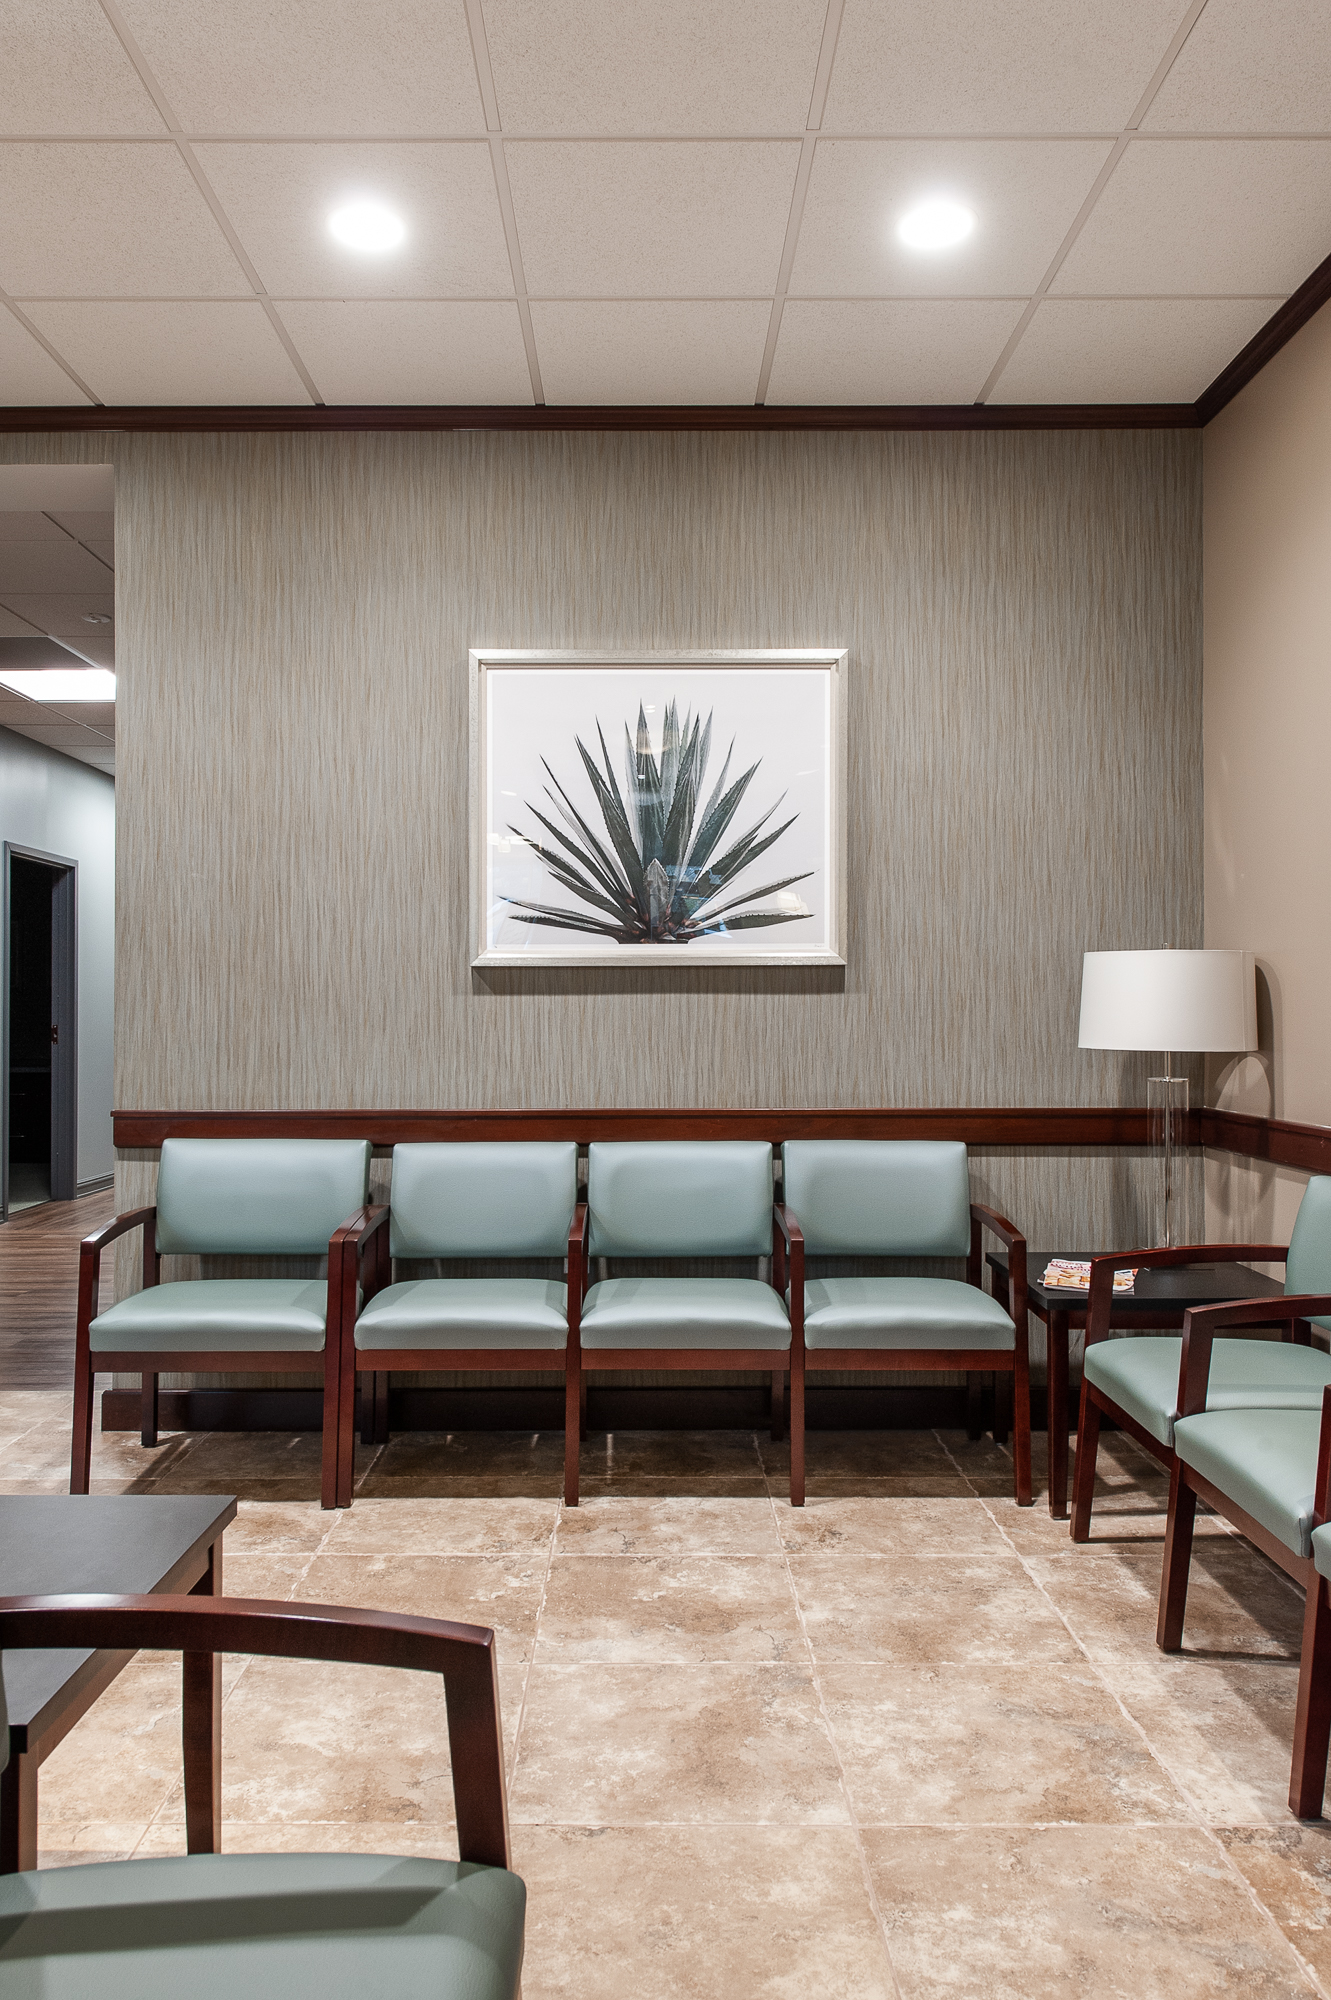 CLAY EYE MANDARIN - Take a photo tour of the newly renovated eye surgeon's office